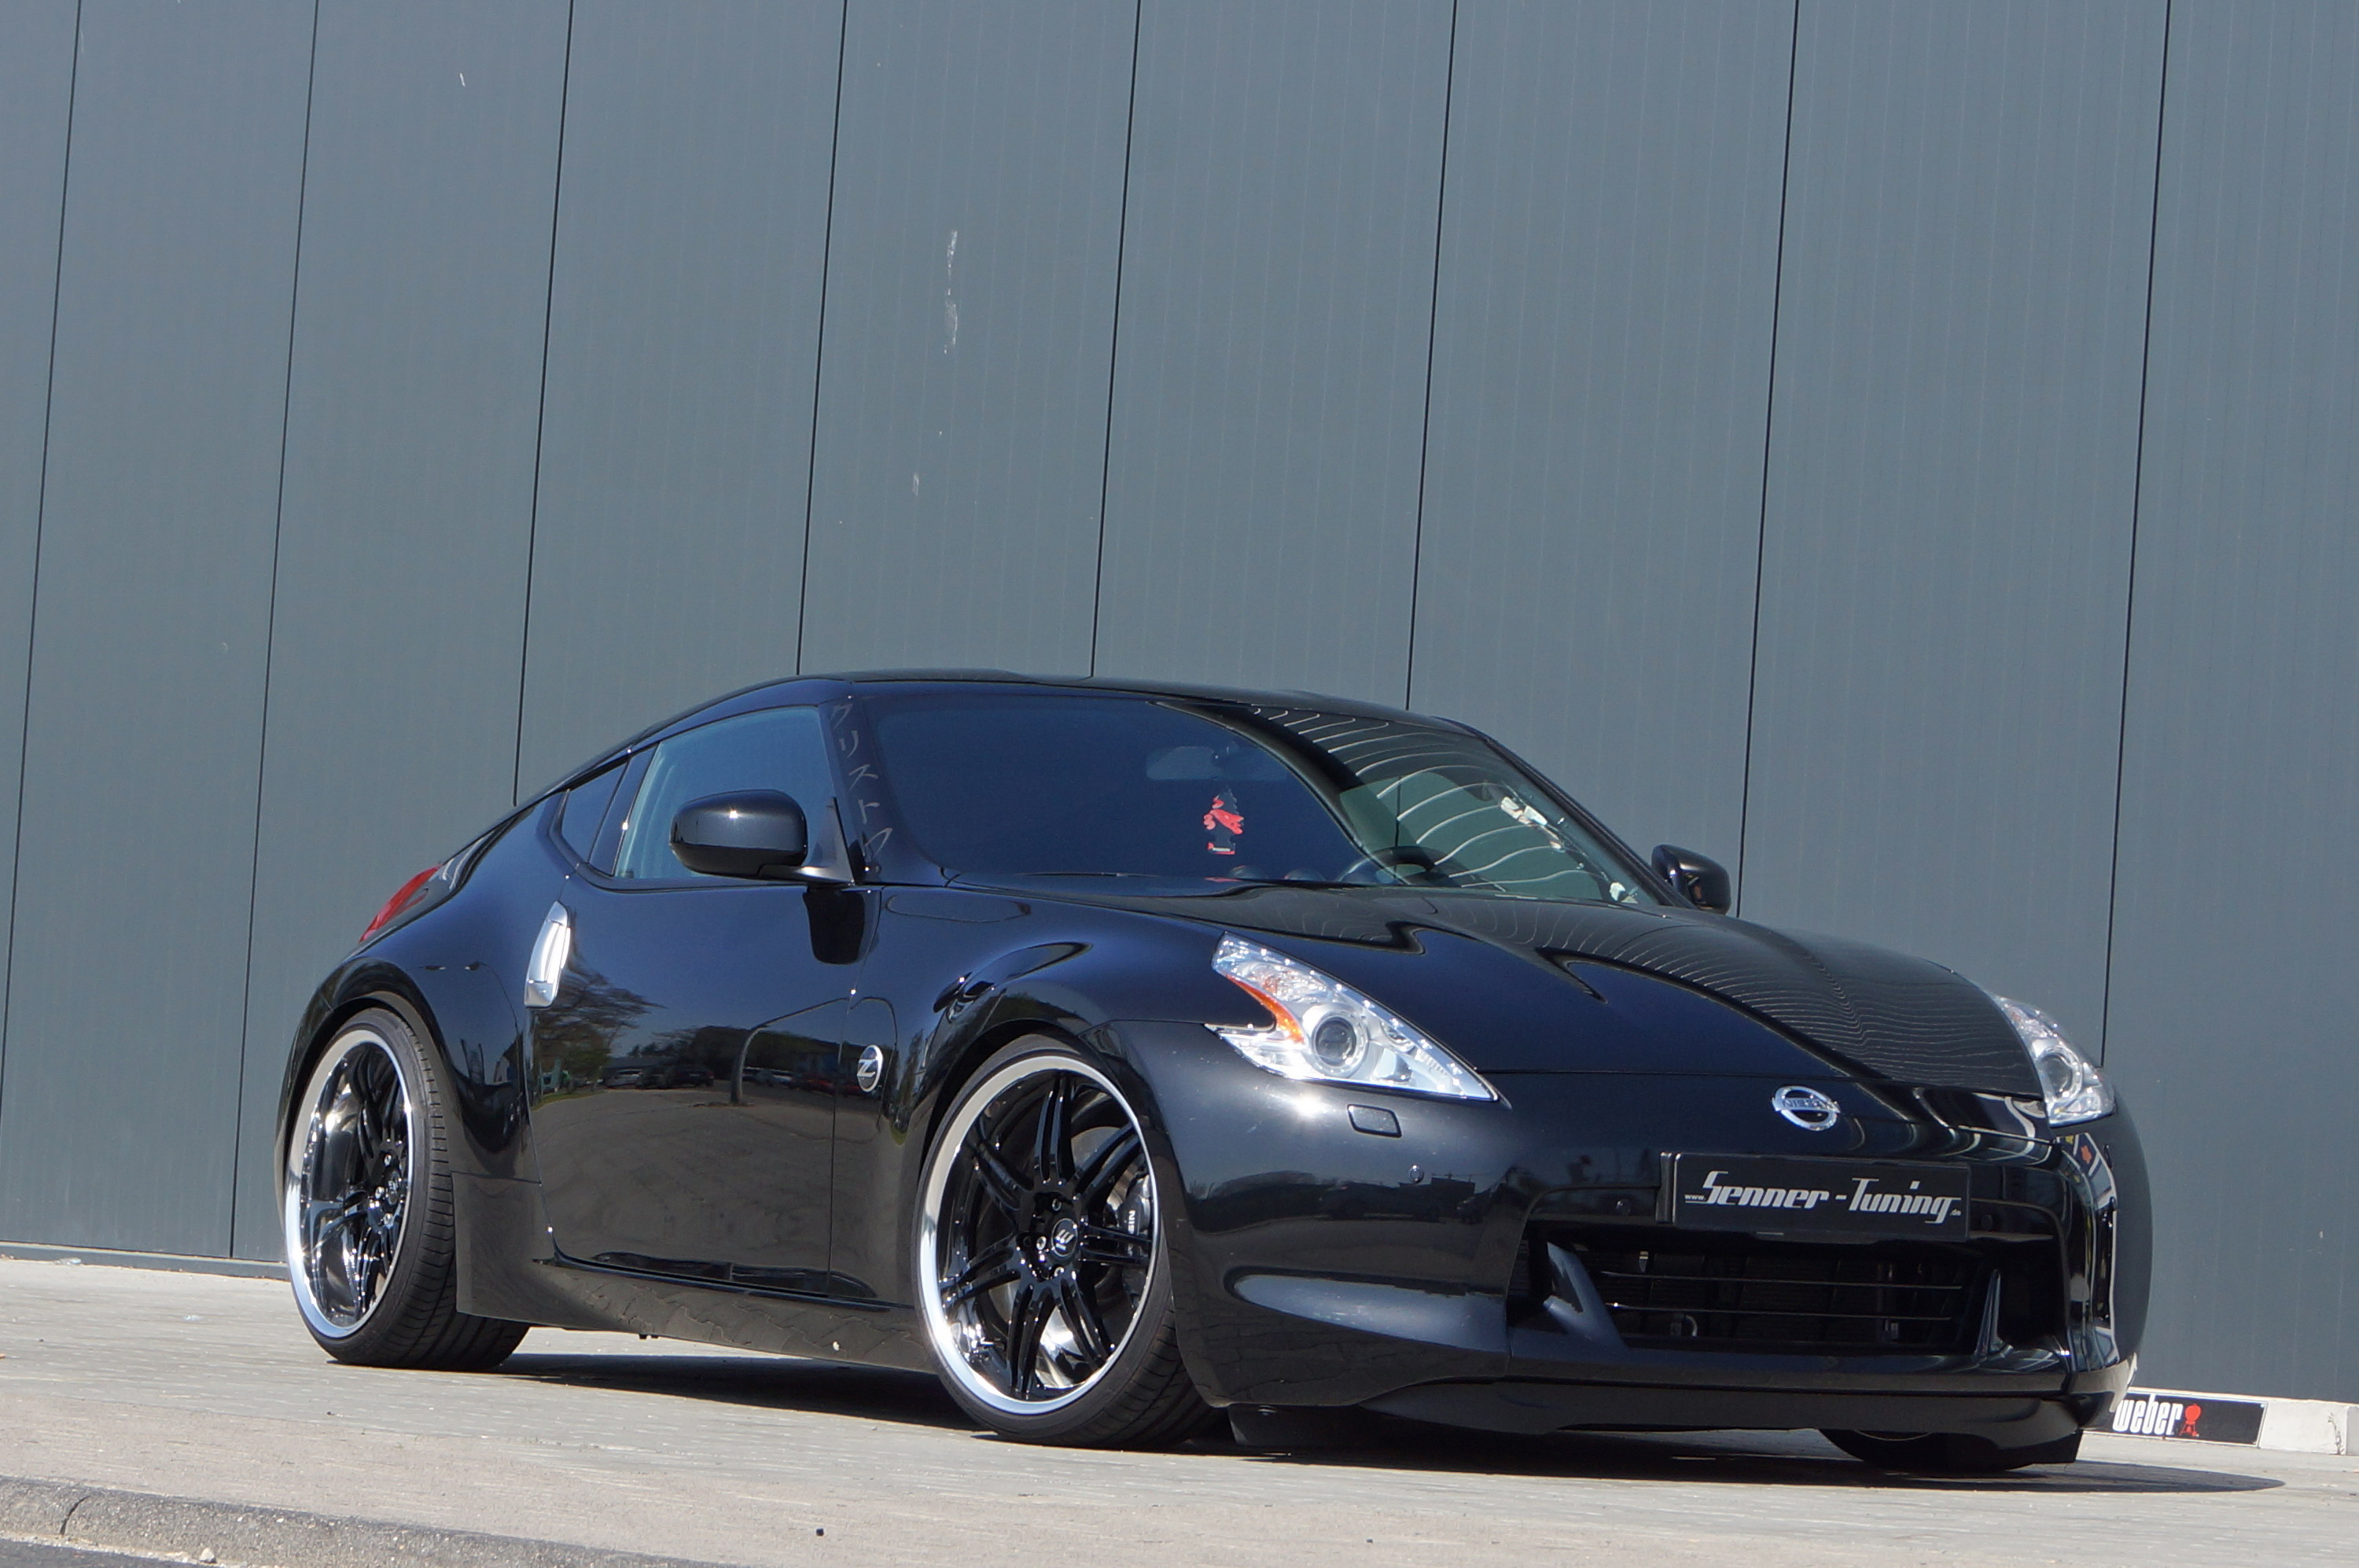 2013 Nissan 370z By Senner Tuning Top Speed Nissan's 2020 sentra compact sedan comes with plenty of power, is affordable, has advanced safety features and its suspension is tuned for comfort. 2013 nissan 370z by senner tuning top